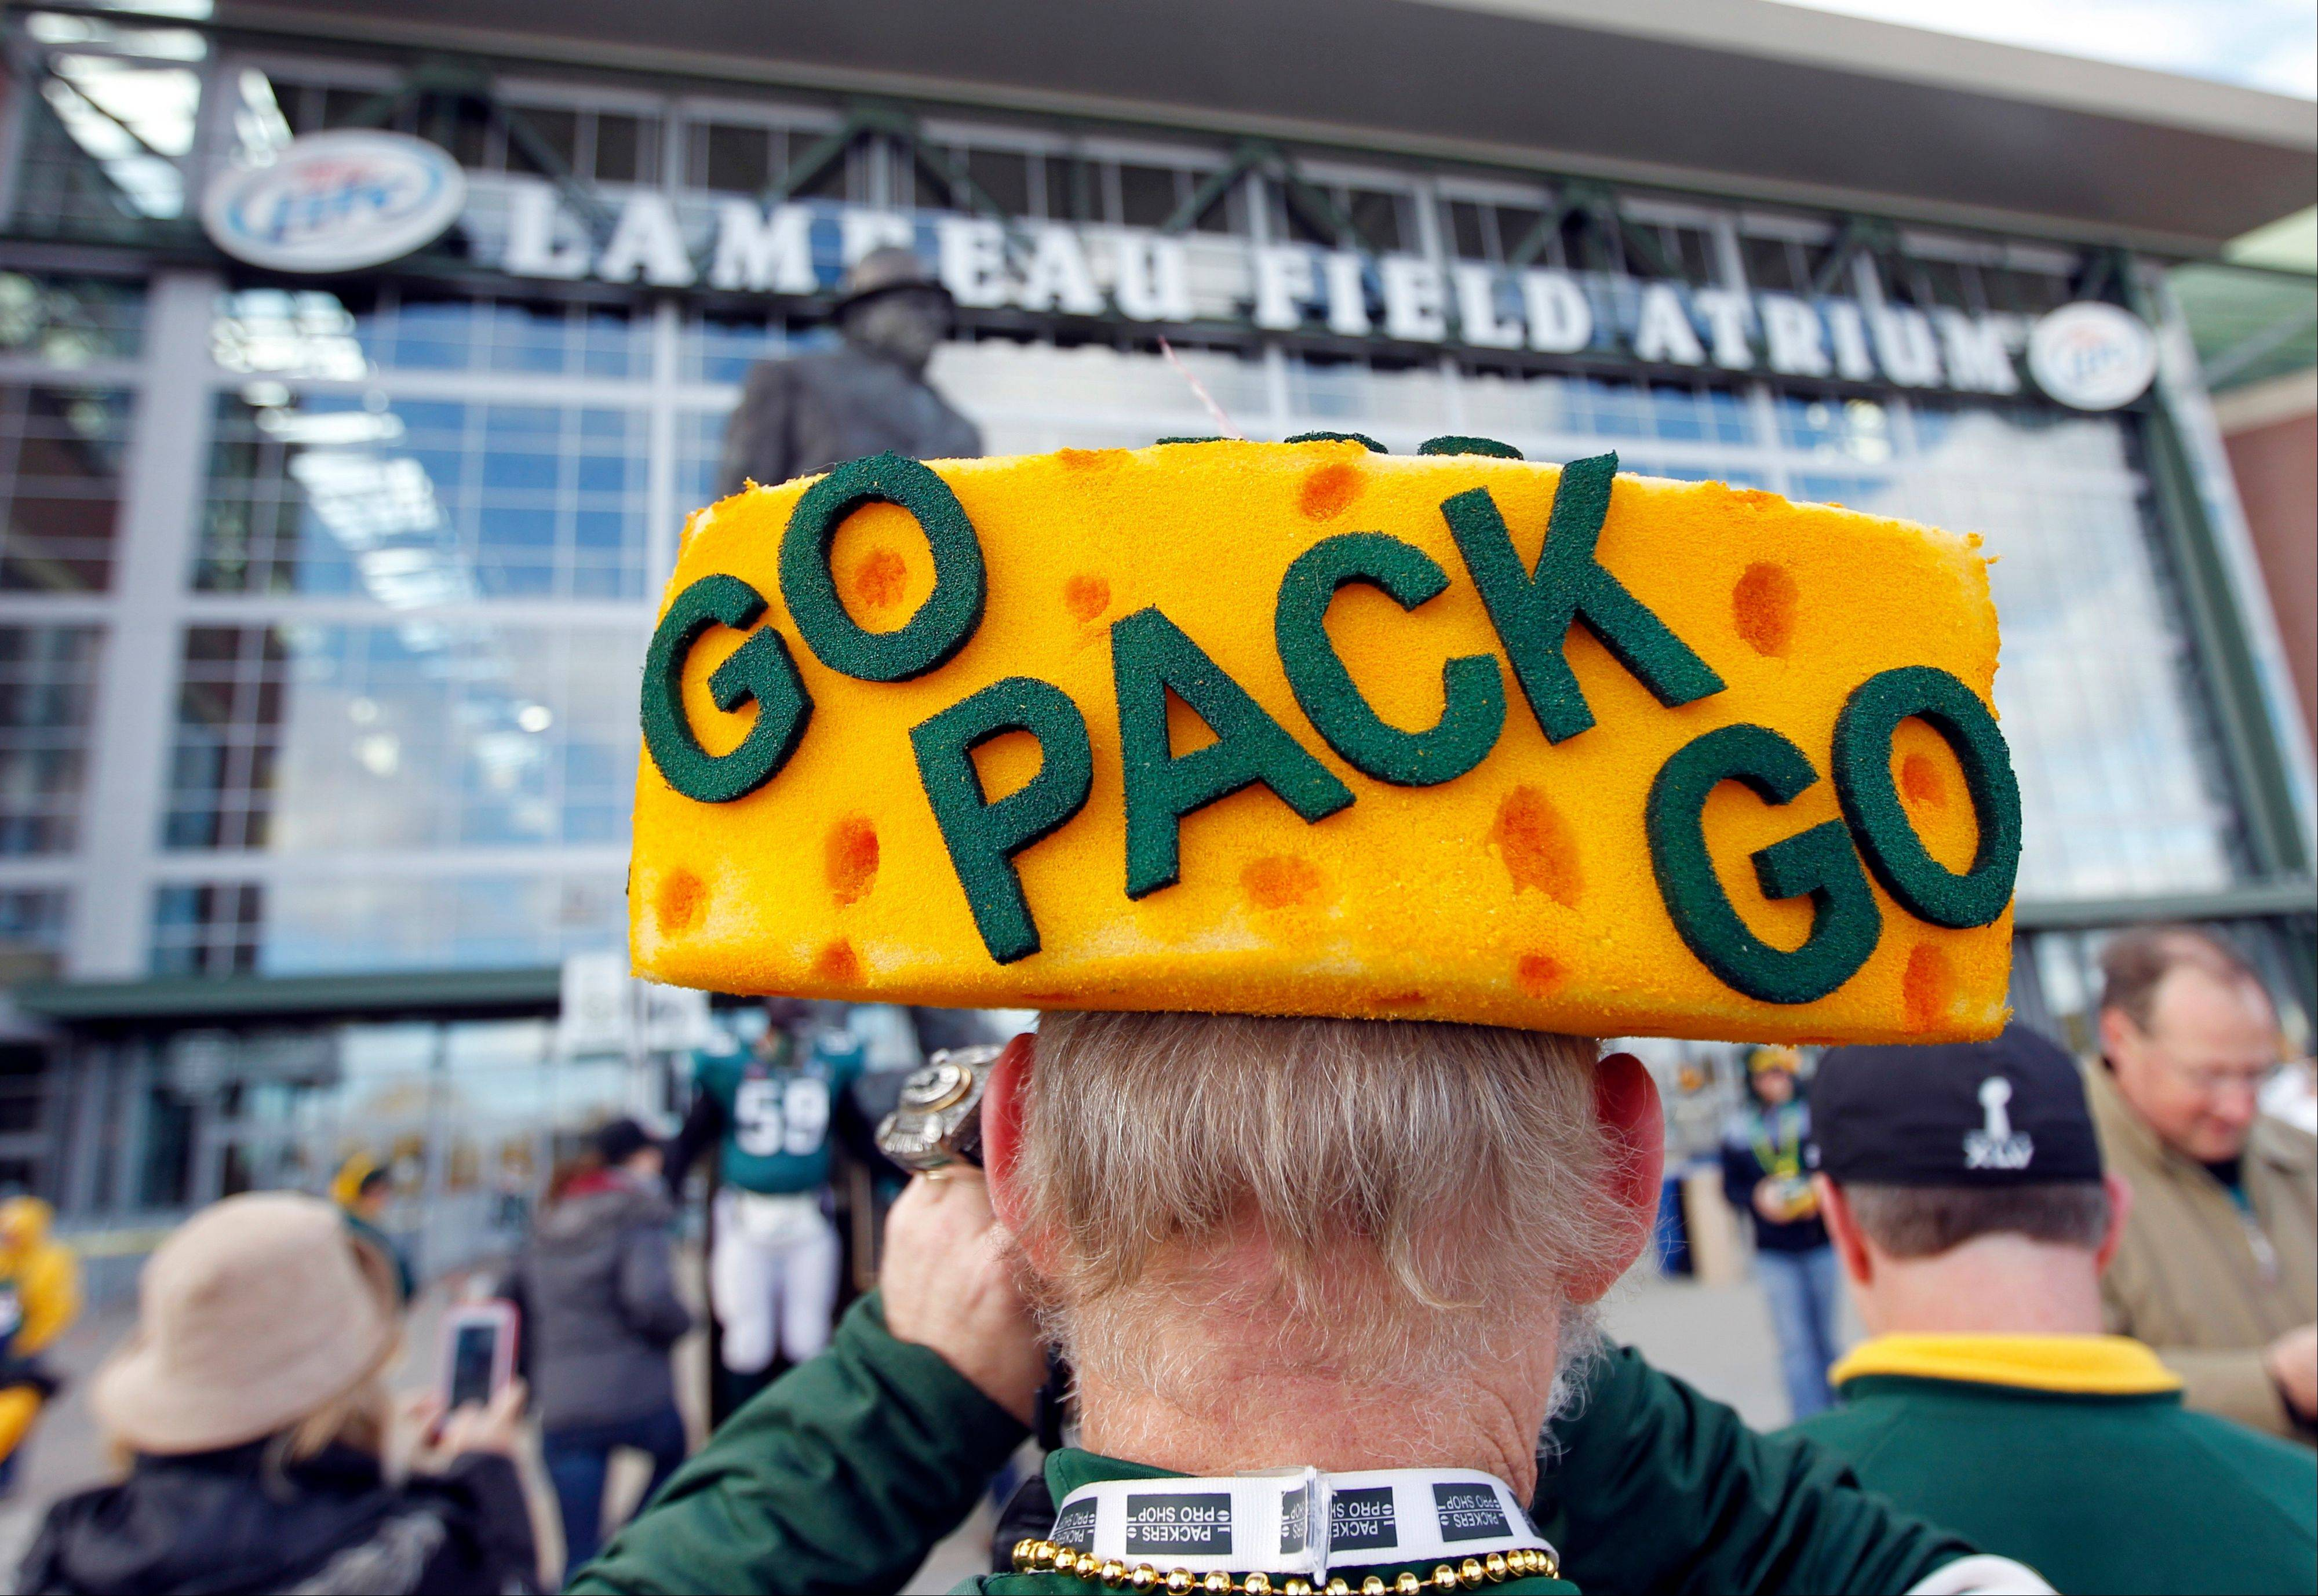 A fan takes pictures outside Lambeau Field before a game between the Green Bay Packers and the Philadelphia Eagles in Green Bay, Wis. The Packers may only play here about a dozen times a season, but fans can visit practically every day of the year, for a tour that costs just $11.